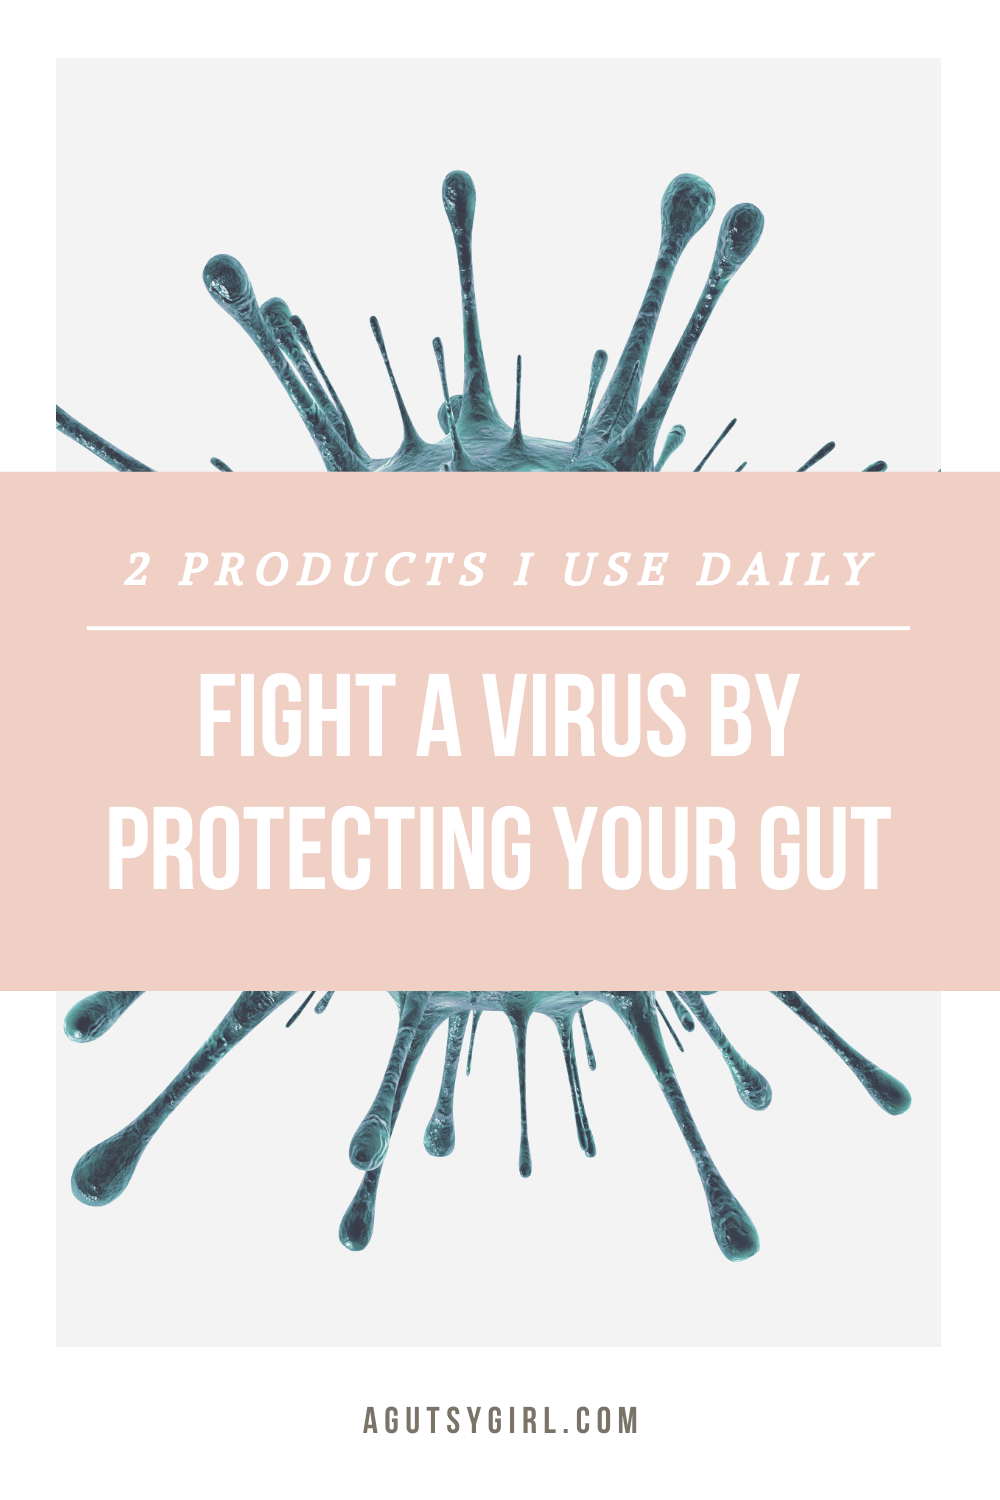 Fight a Virus by Protecting Your Gut agutsygirl.com #guthealth #immunesystem #healthyliving